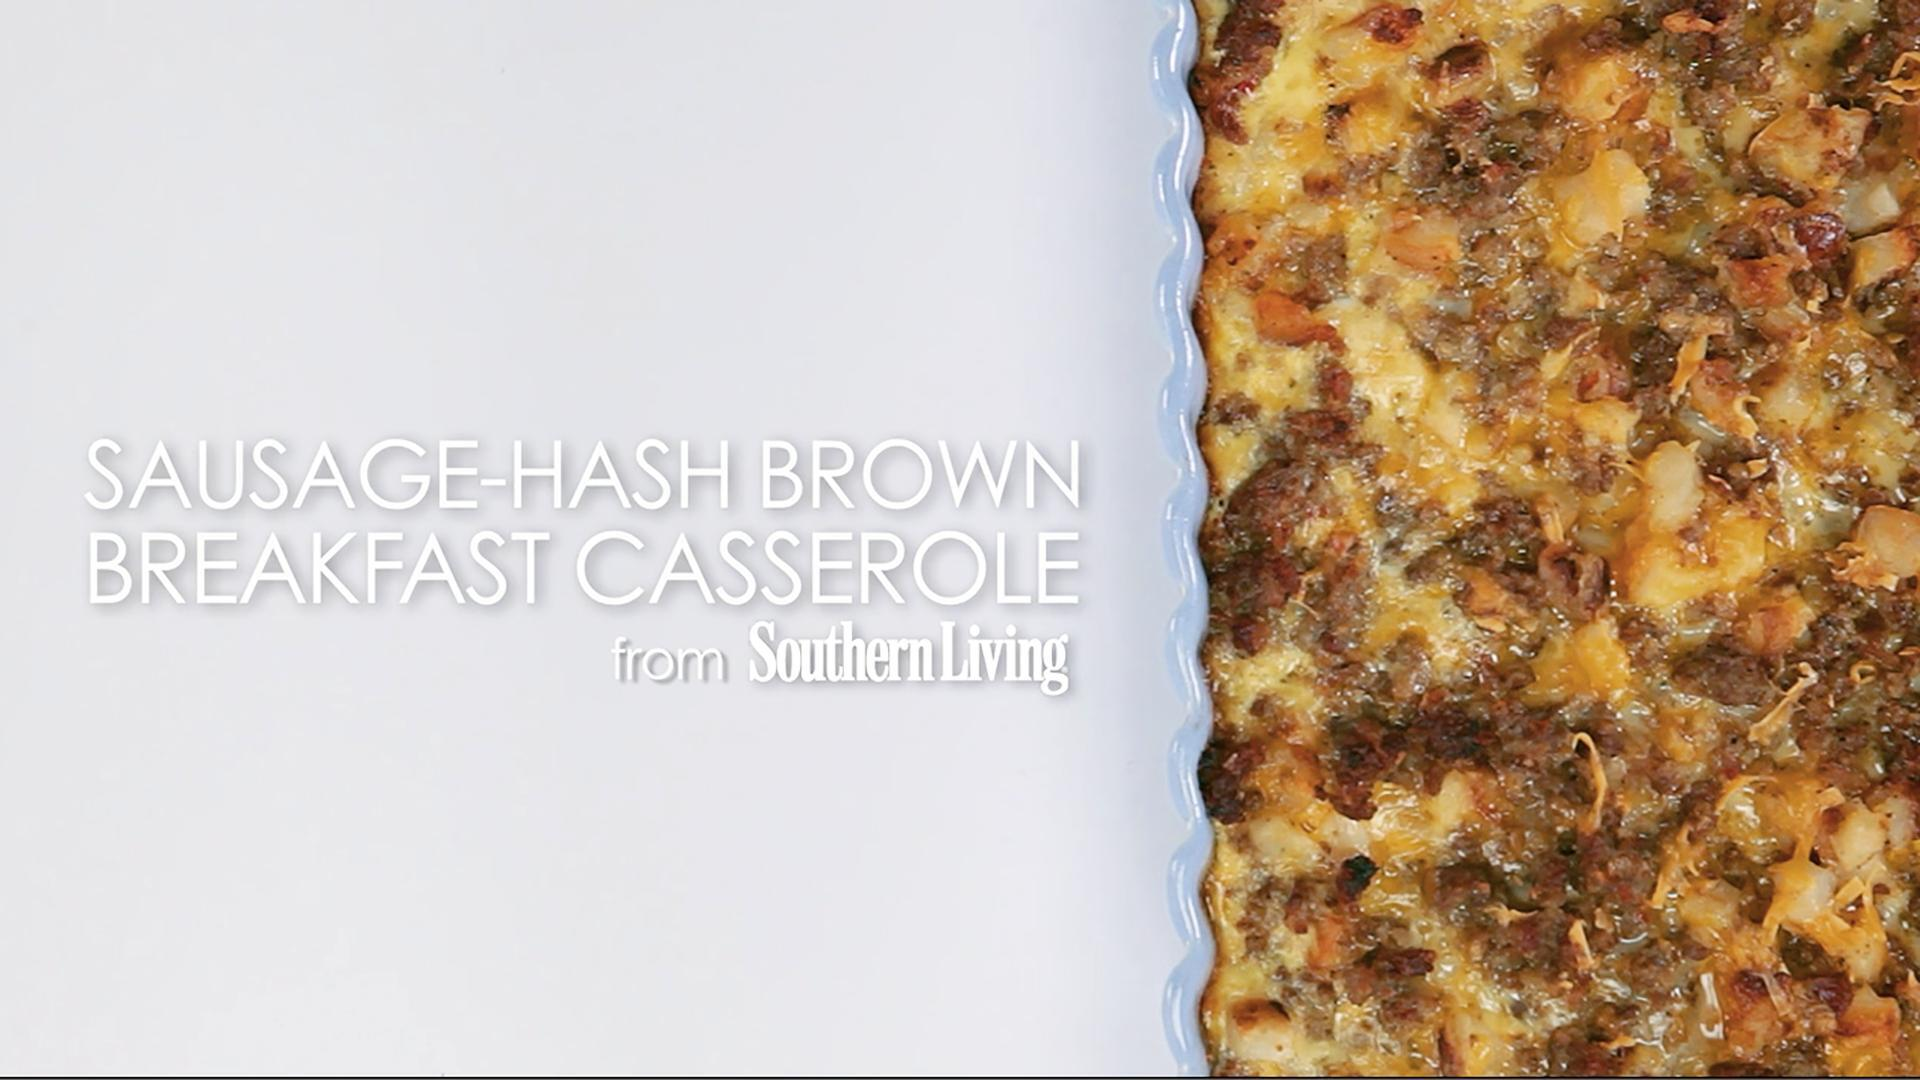 How to Make Sausage-Hash Brown Breakfast Casserole